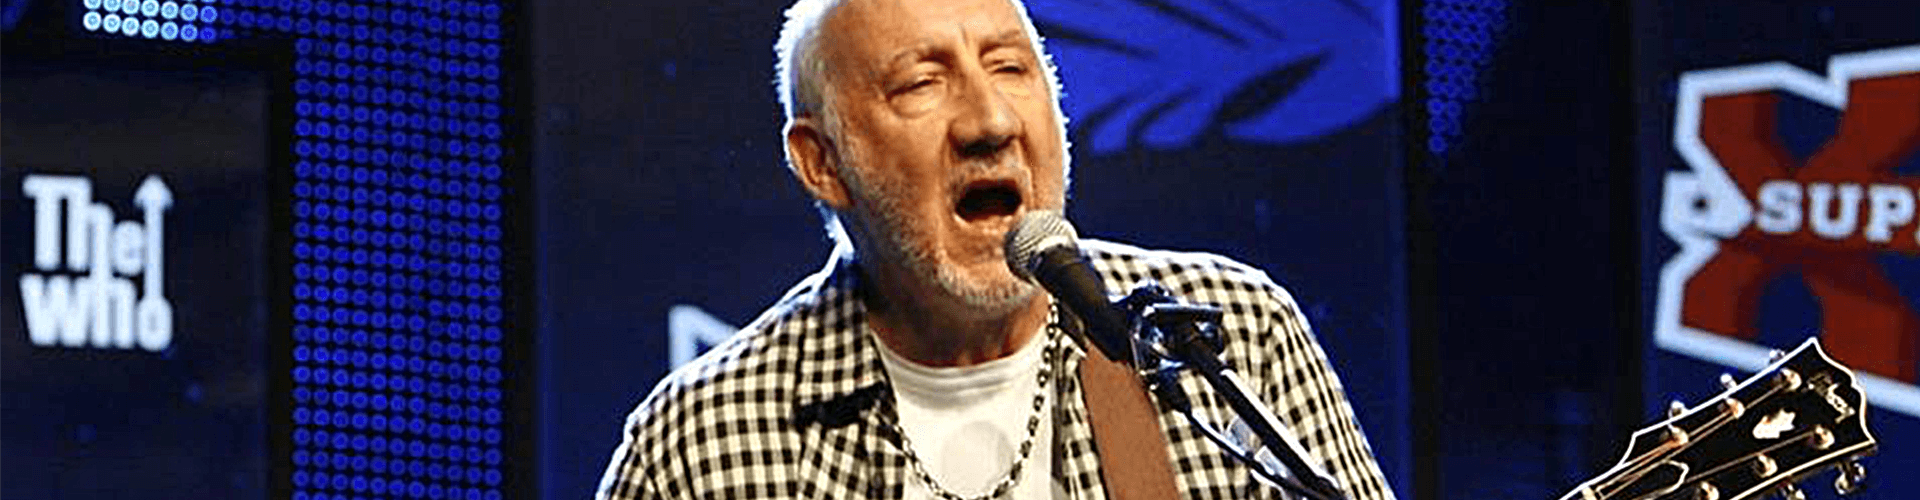 Pete Townsend performing a celebration of The Who.